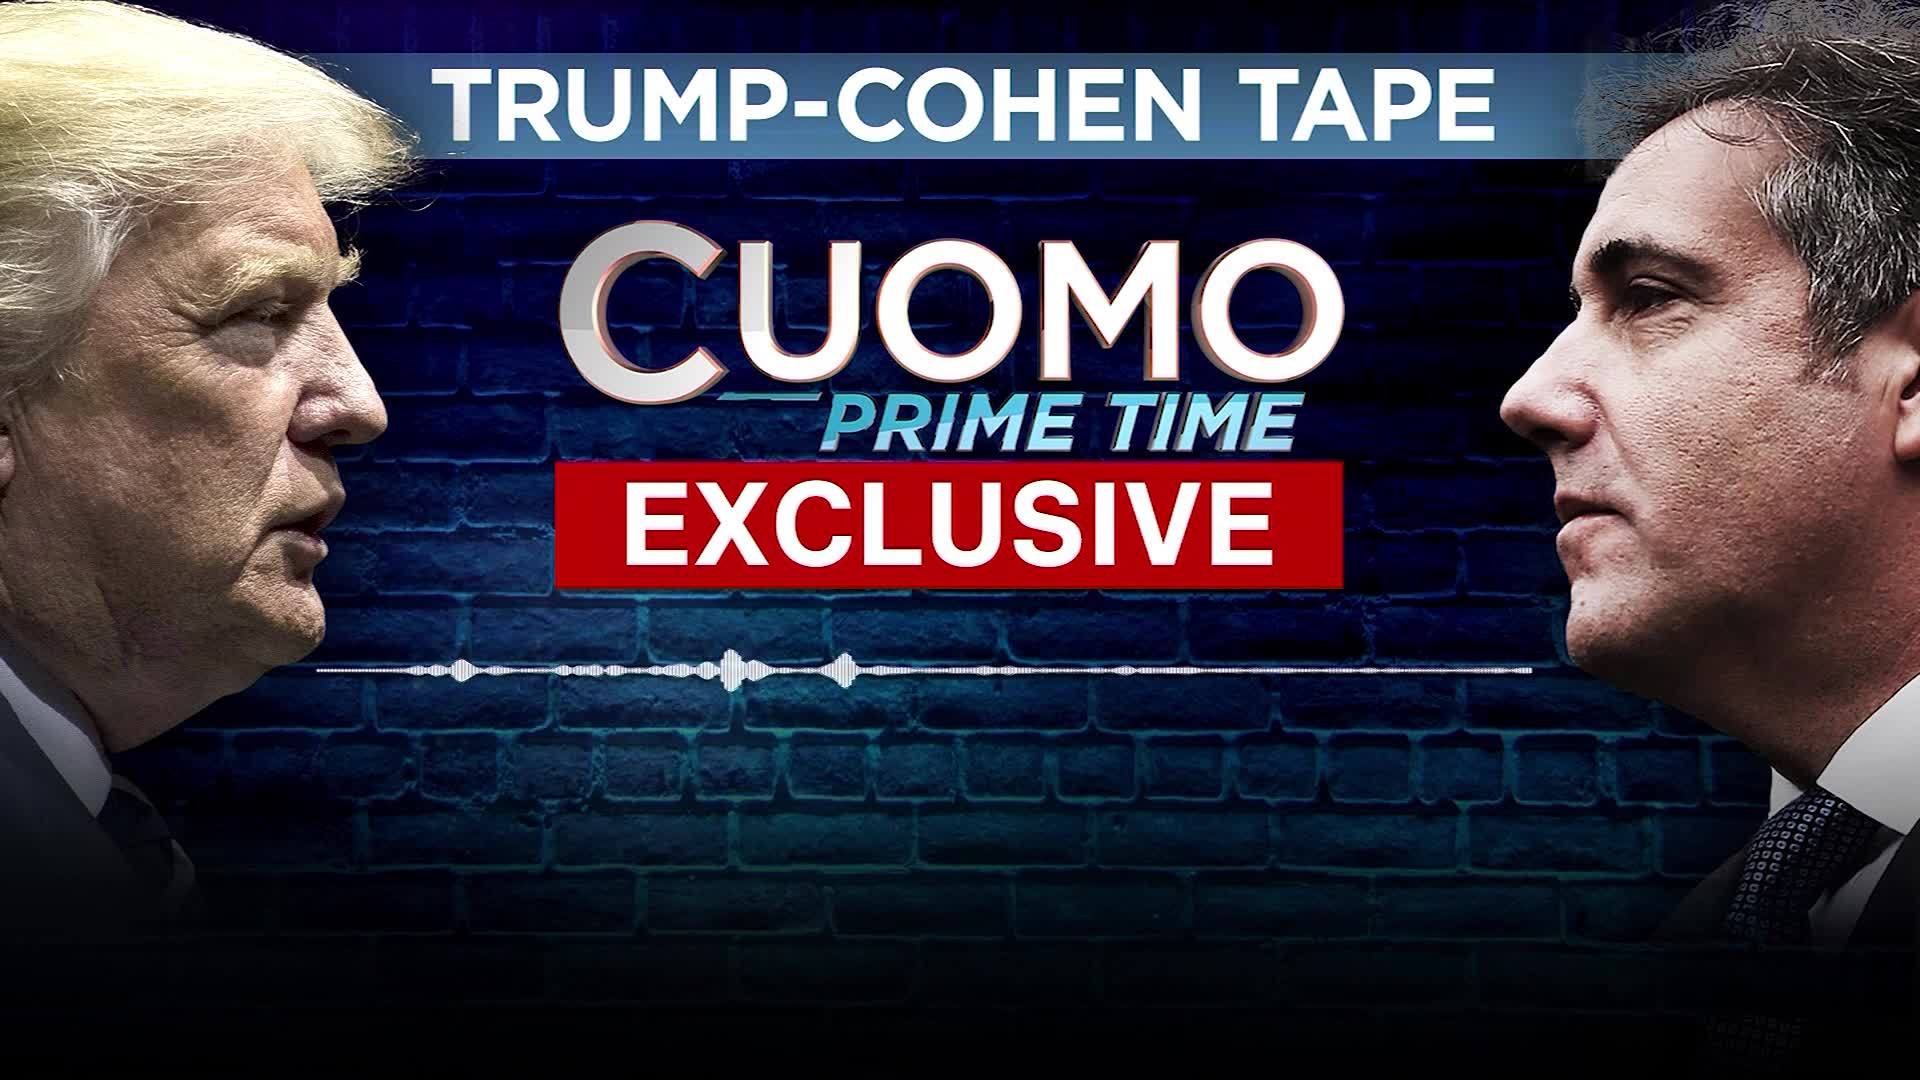 AUDIO FILE: CNN obtains Trump-Cohen audio recording